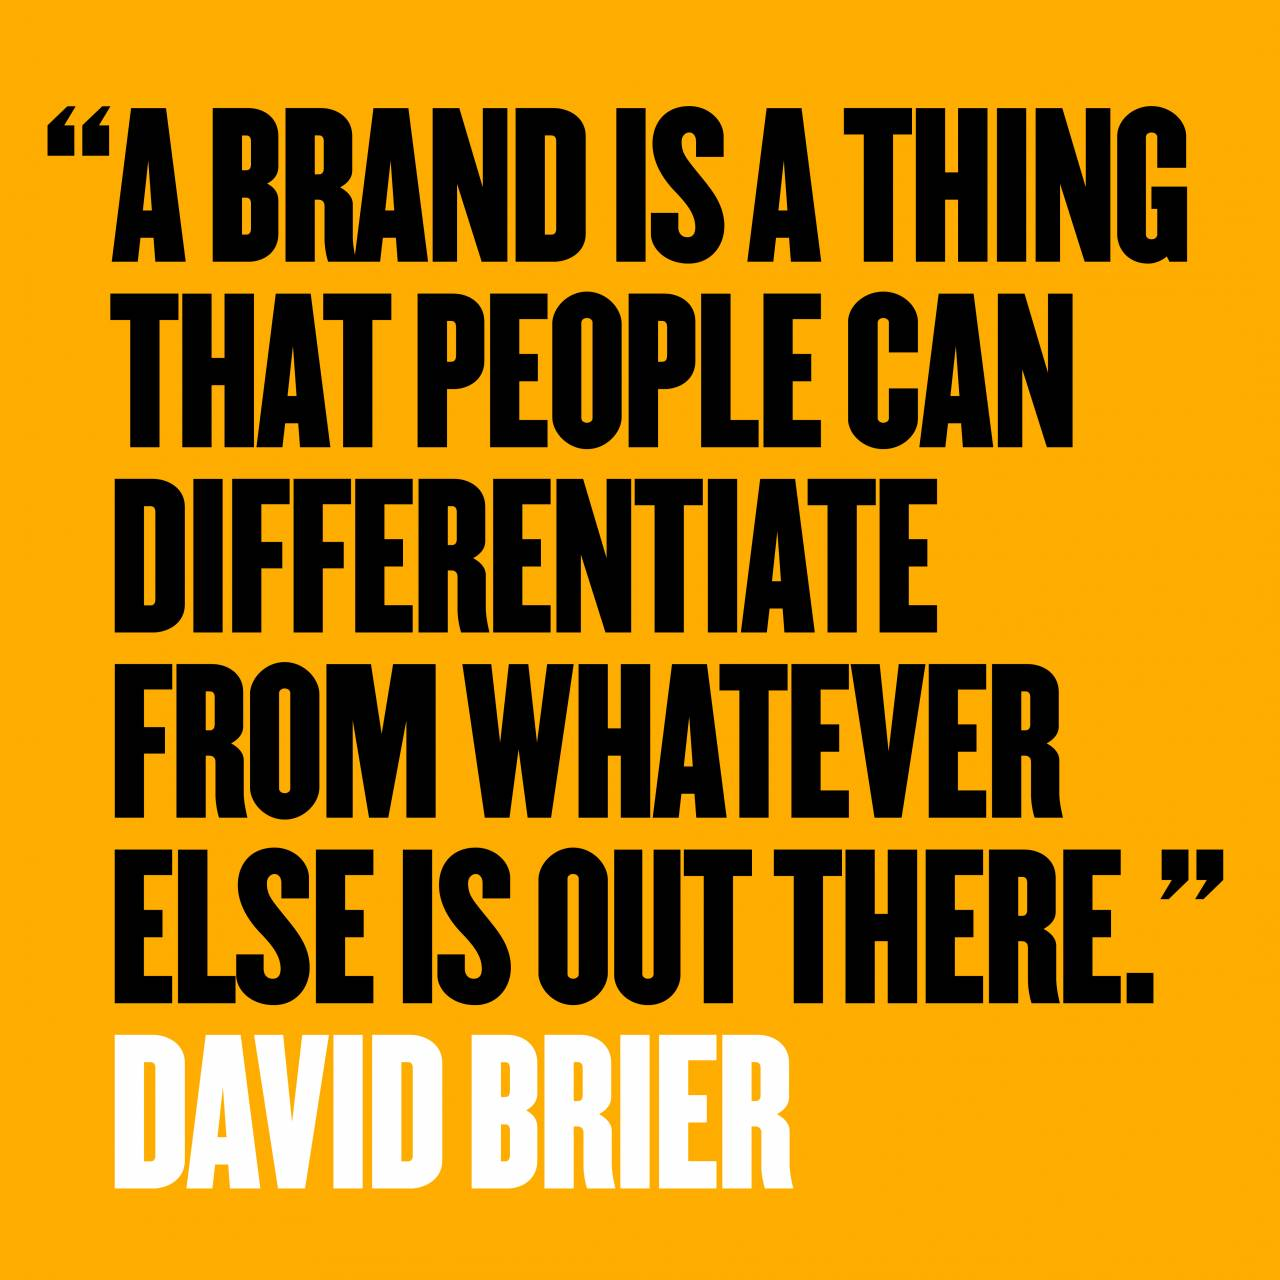 How to Wisely Choose Every Brand Quote #4